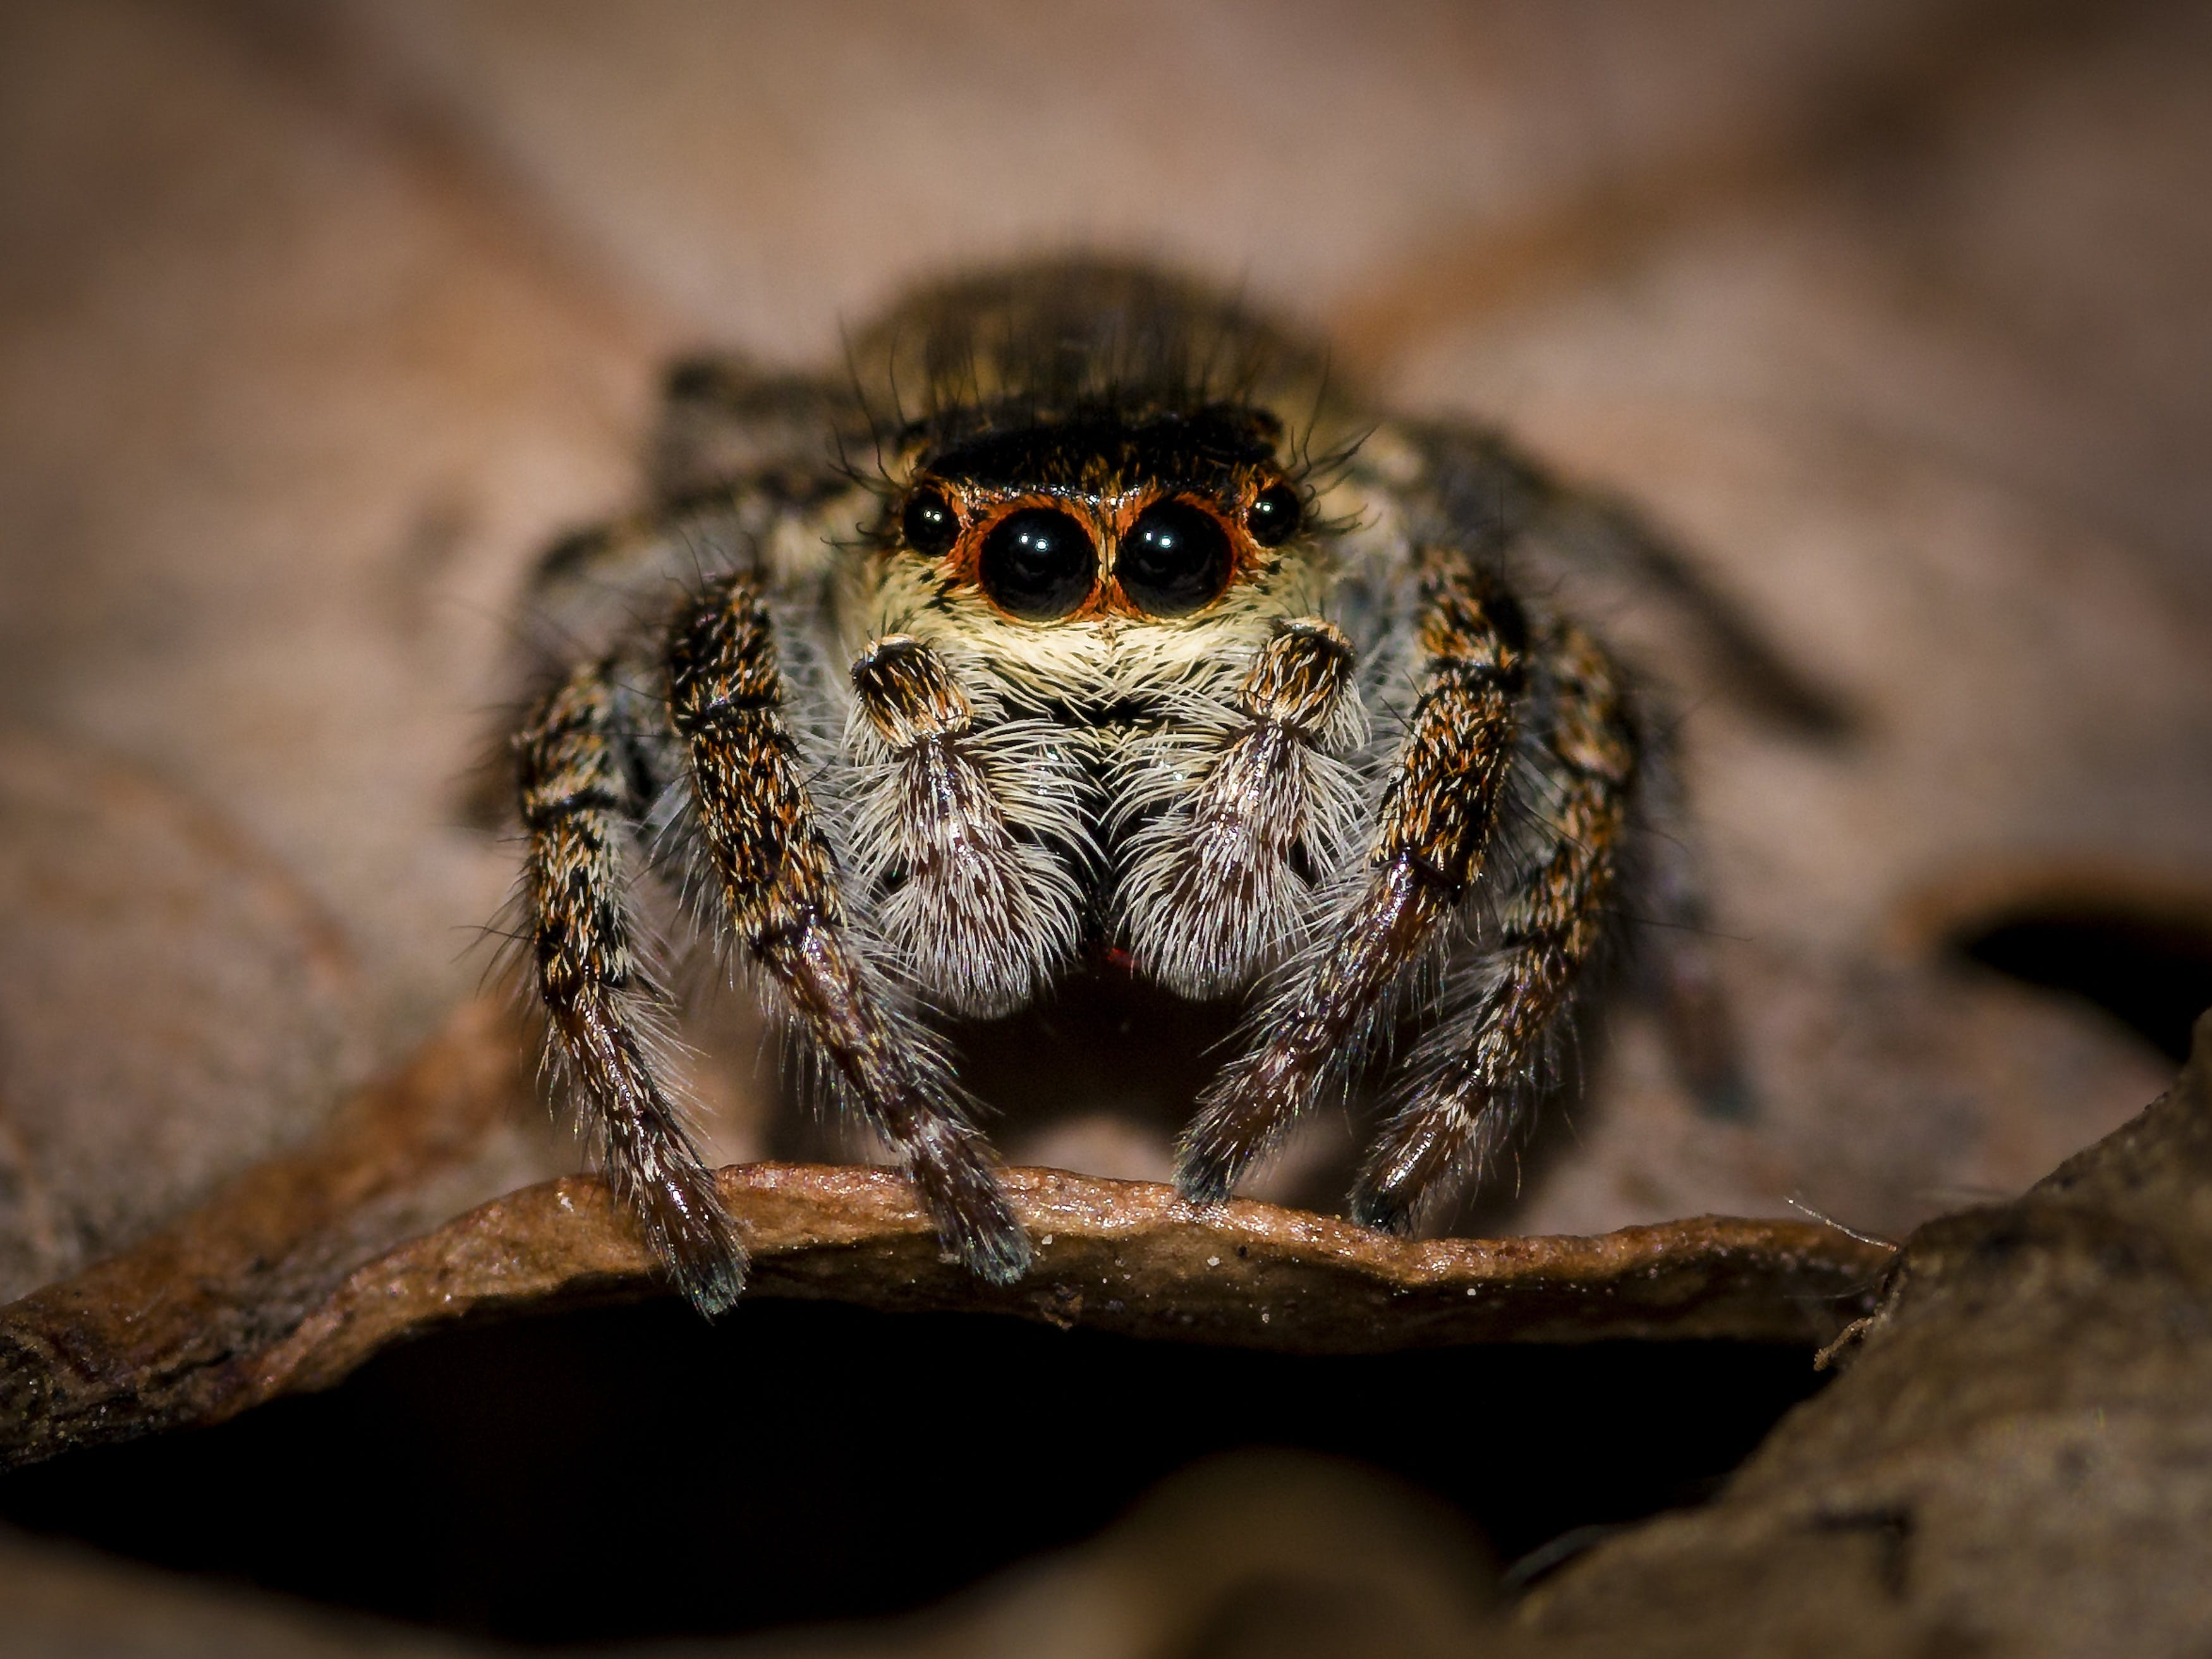 animal, arachnid, close-up